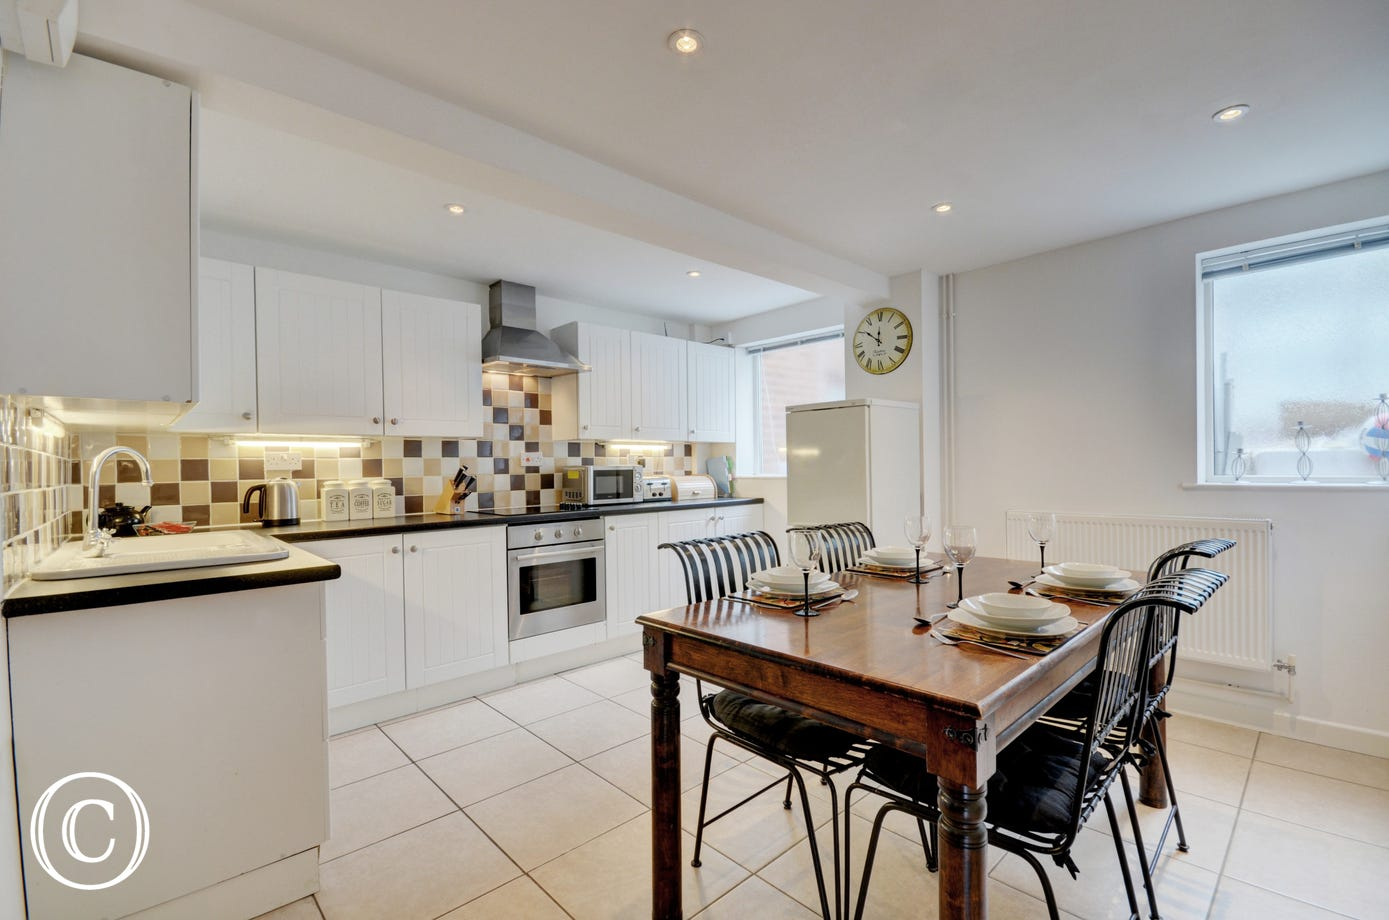 Fitted and equipped kitchen with dining table and  chairs